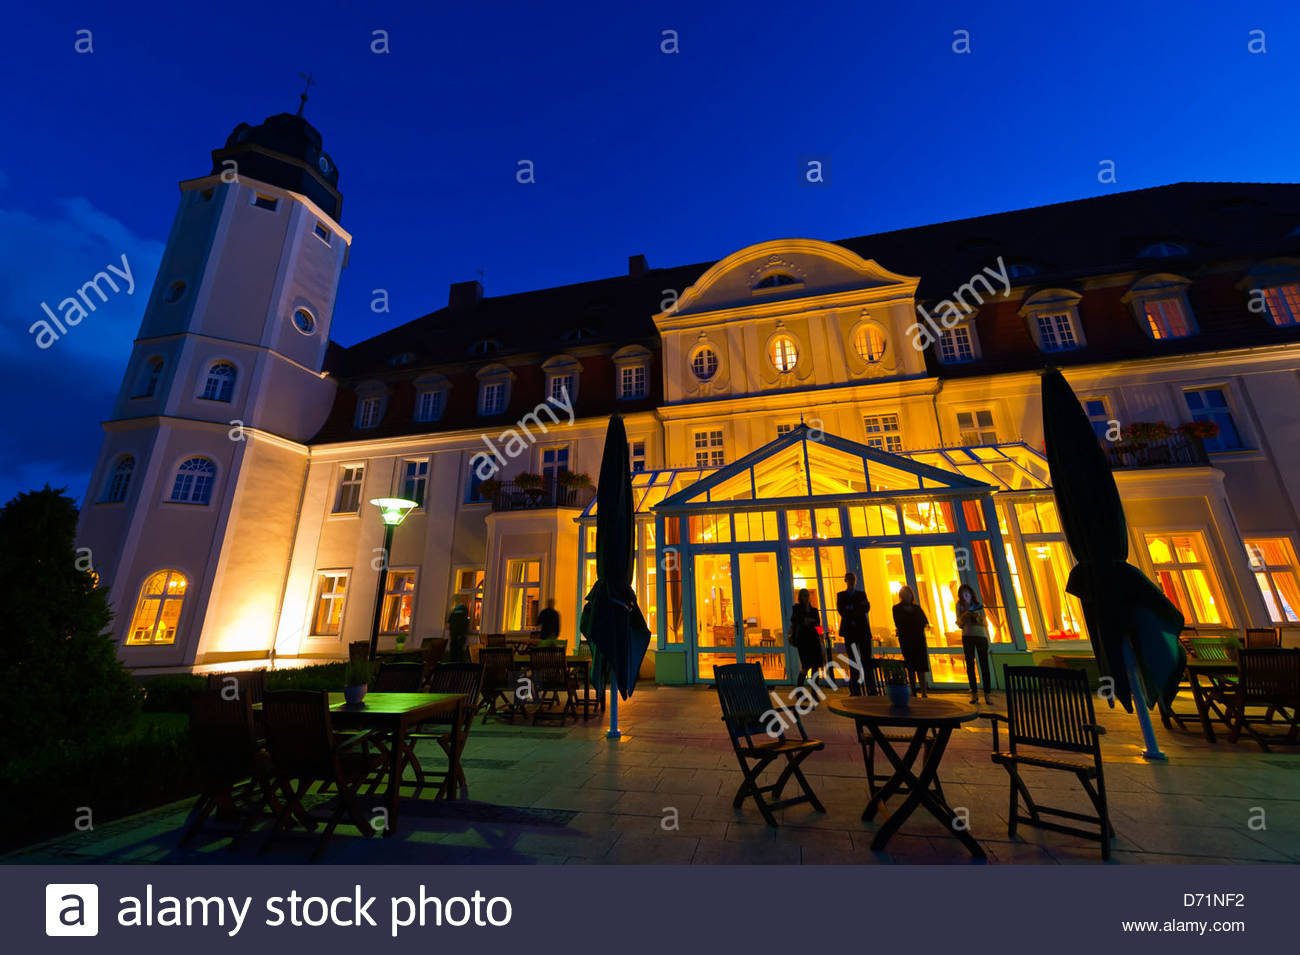 Radisson Blu Resort Schloss Fleesensee (castle hotel), Fleesensee, Germany - Stock Image